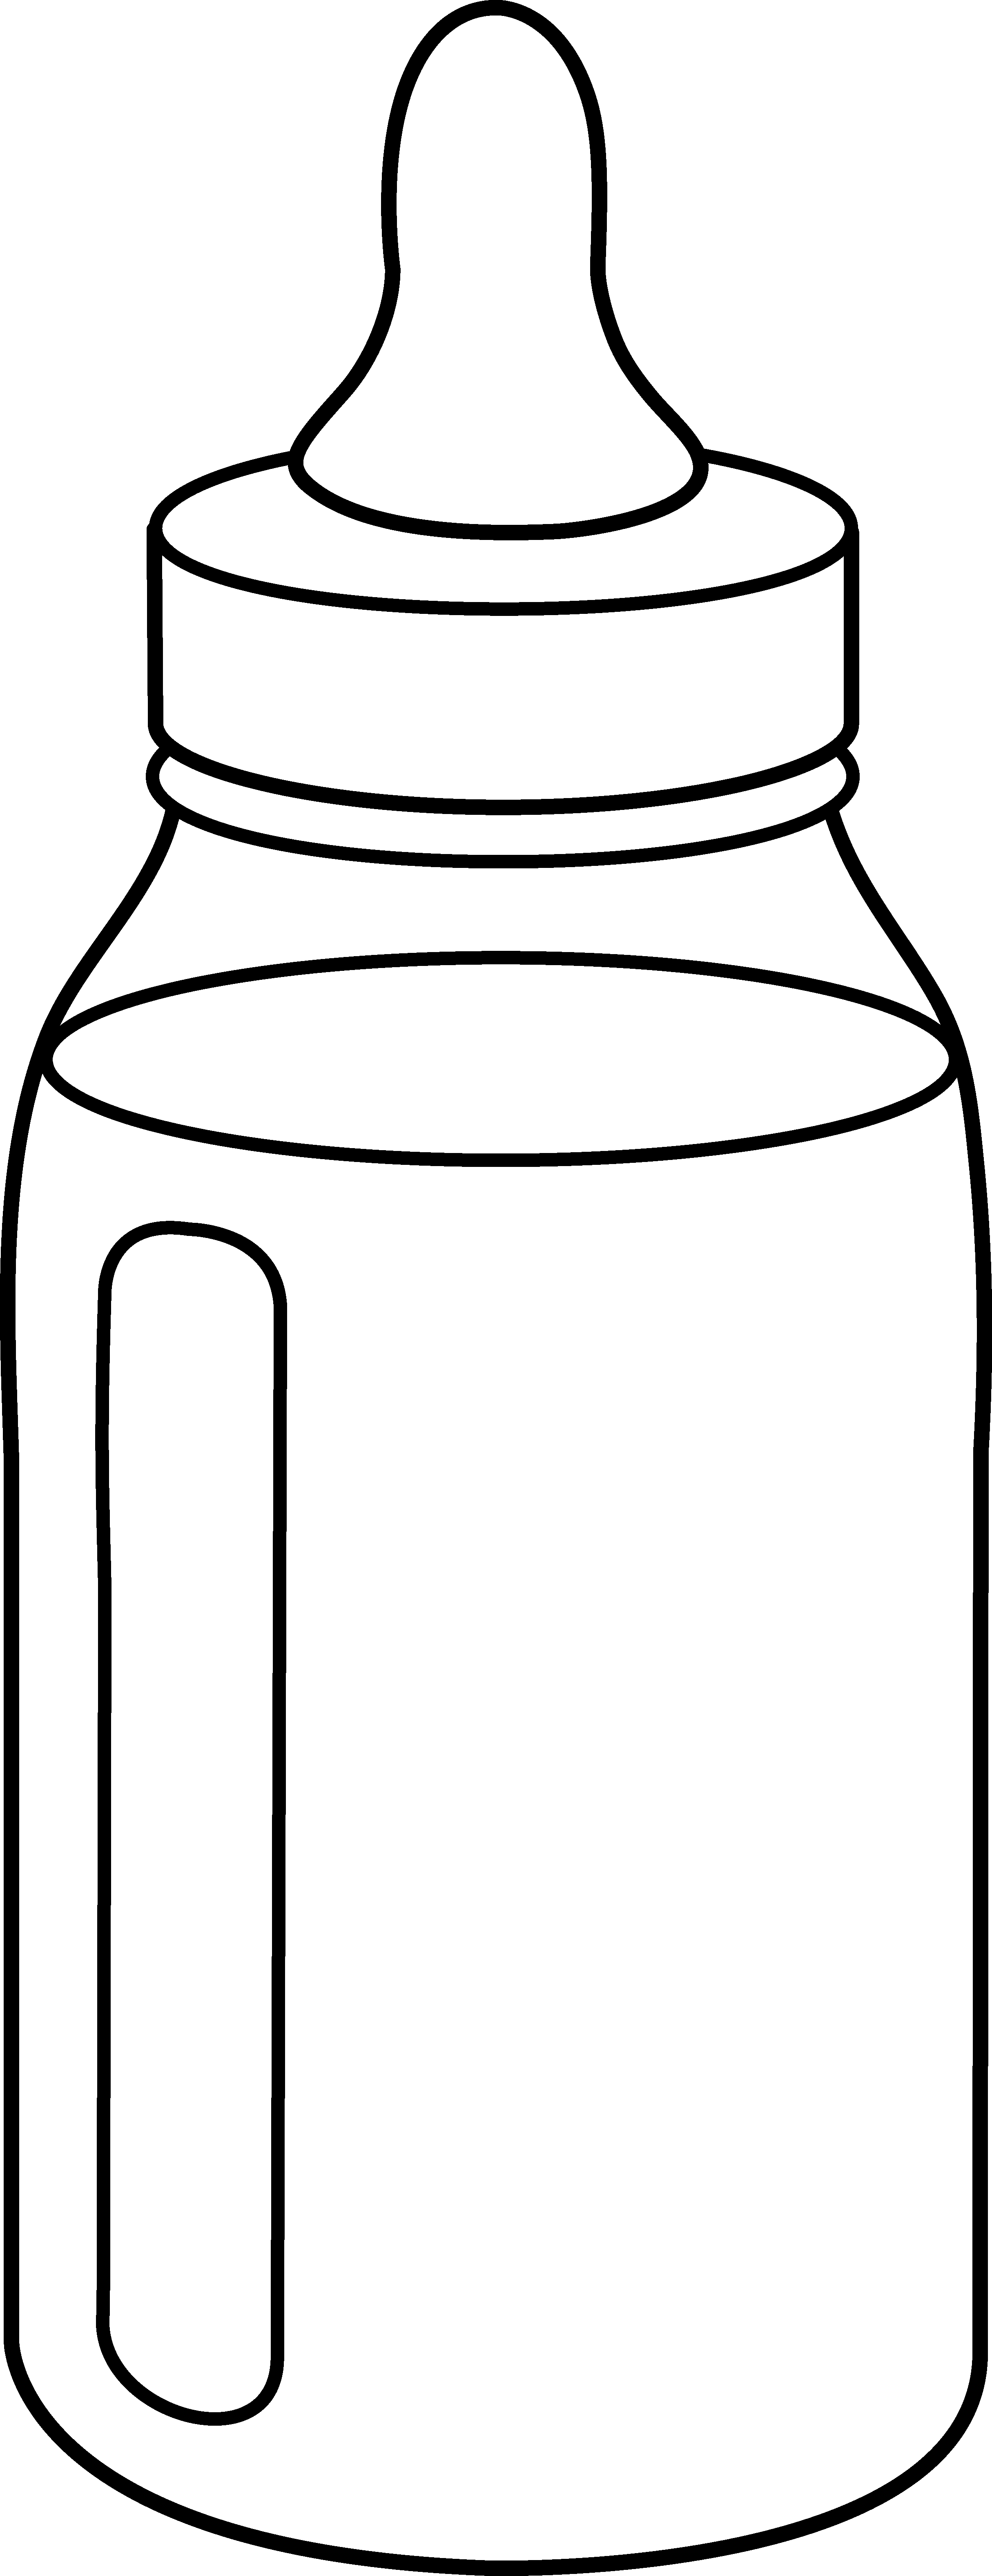 21+ Baby bottle clipart black and white info